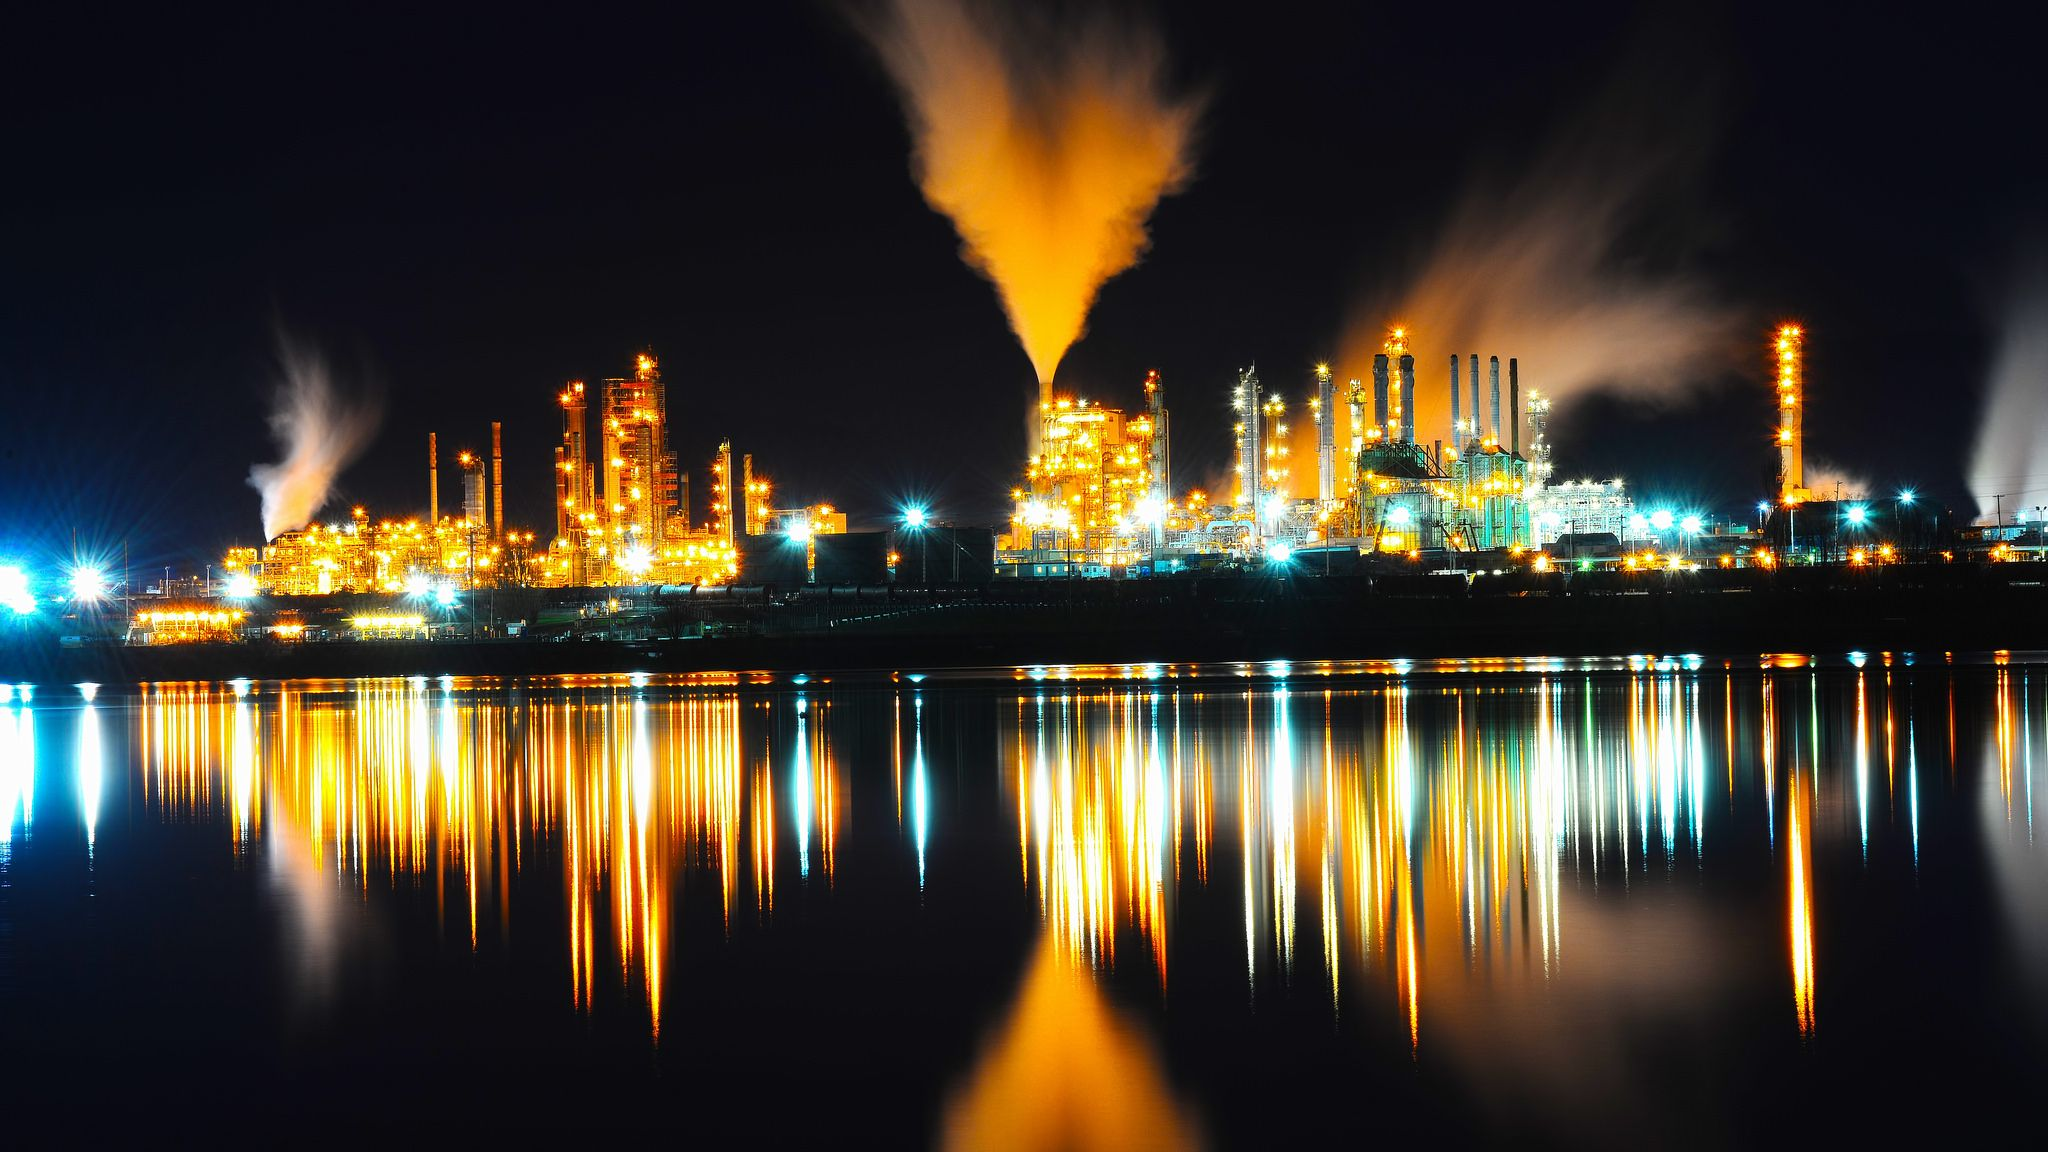 Anacortes Refinery, Washington State | by Don Briggs